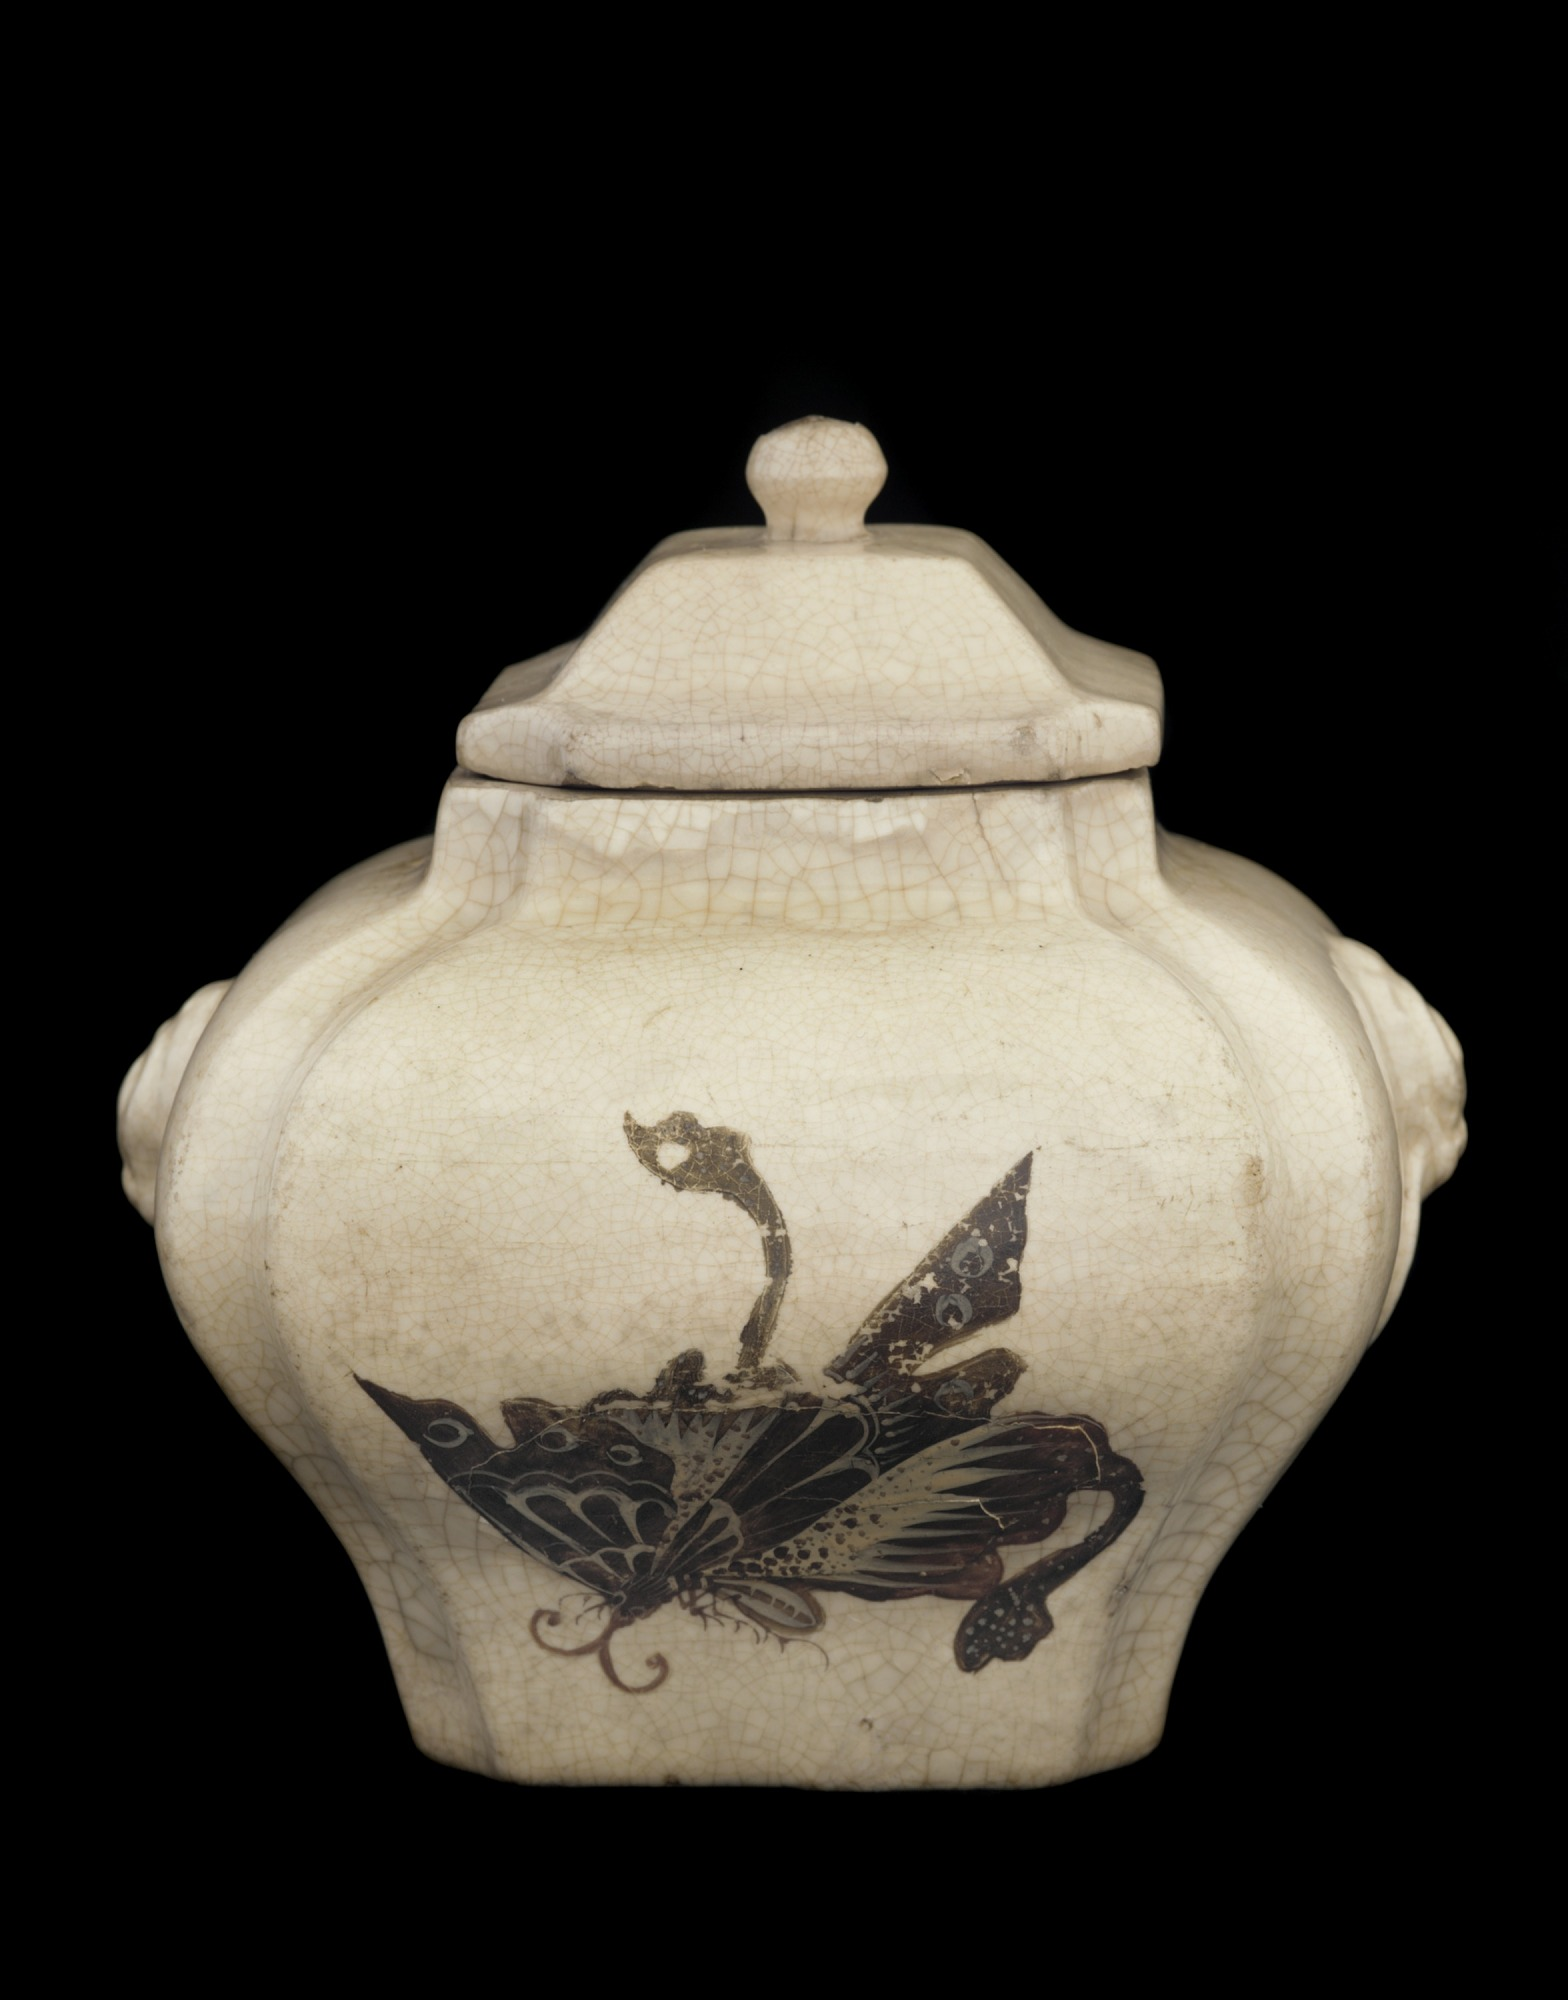 profile: Lidded jar with design of butterflies